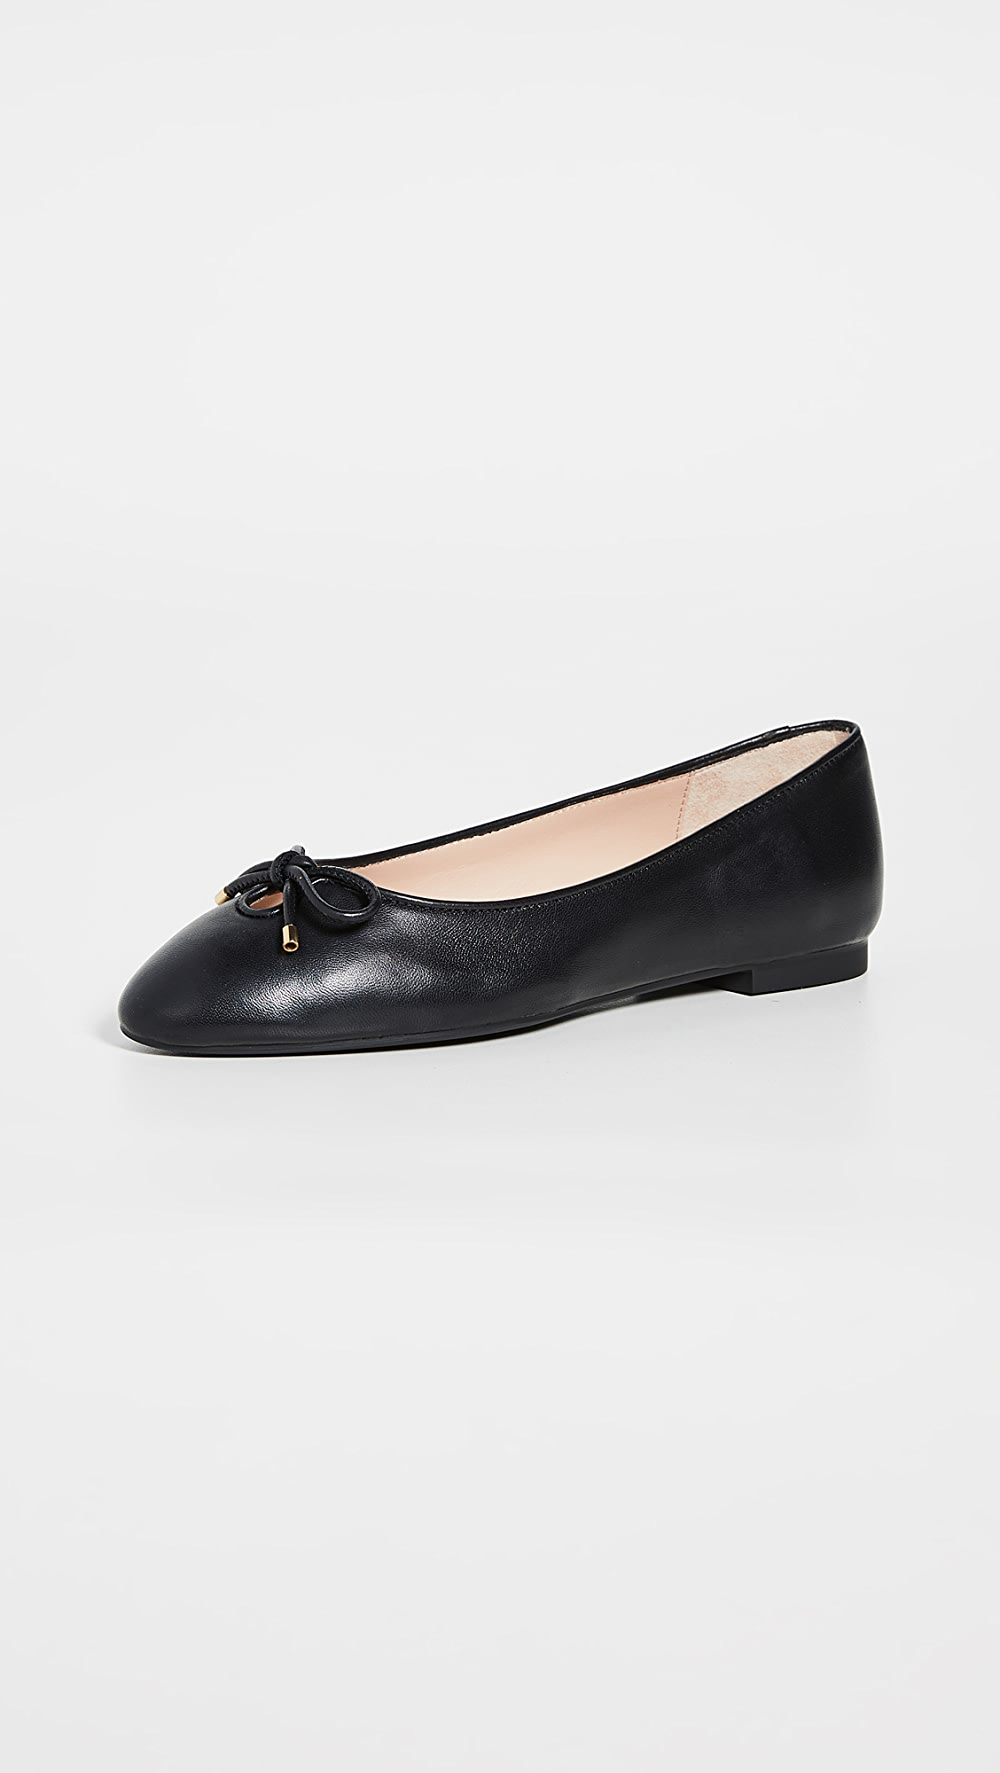 Earnest Stuart Weitzman - Gabby Flats High Quality Goods